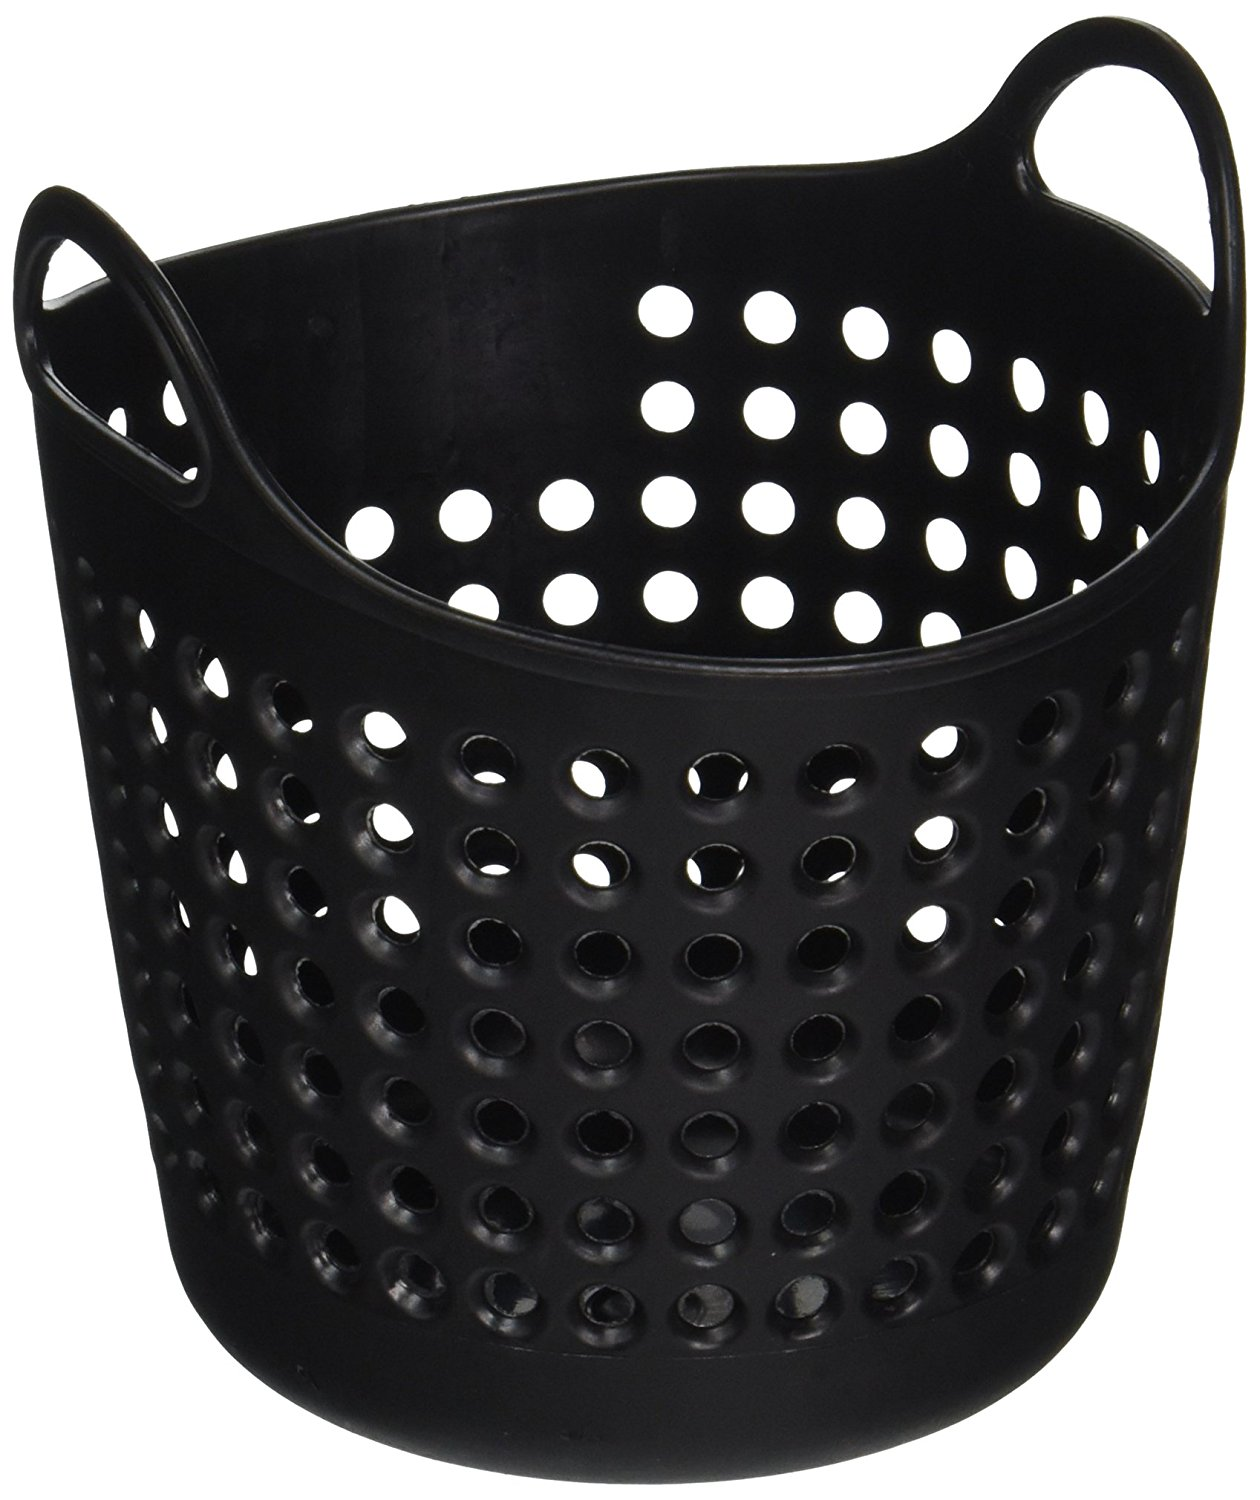 Get Quotations Stealstreet Ss Kd 1616 Black Mini Laundry Basket Office Supply Organizer 4 25